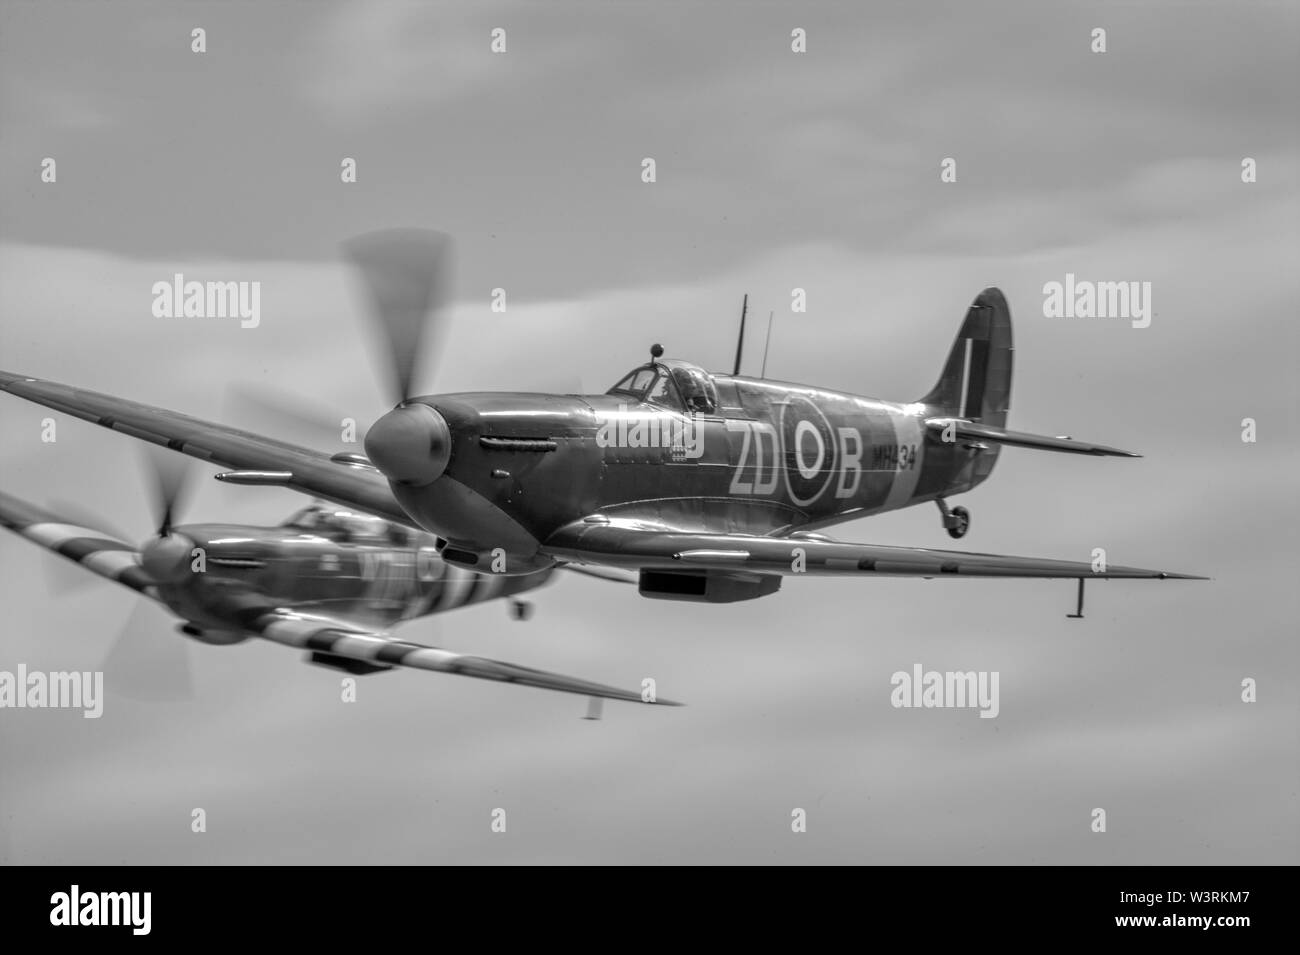 Vickers-Supermarine Spitfire LFIXb G-ASJV MH434/ZD-B world war 2 fighter aircraft in flight, panned with motion blur on the propeller blades. Stock Photo